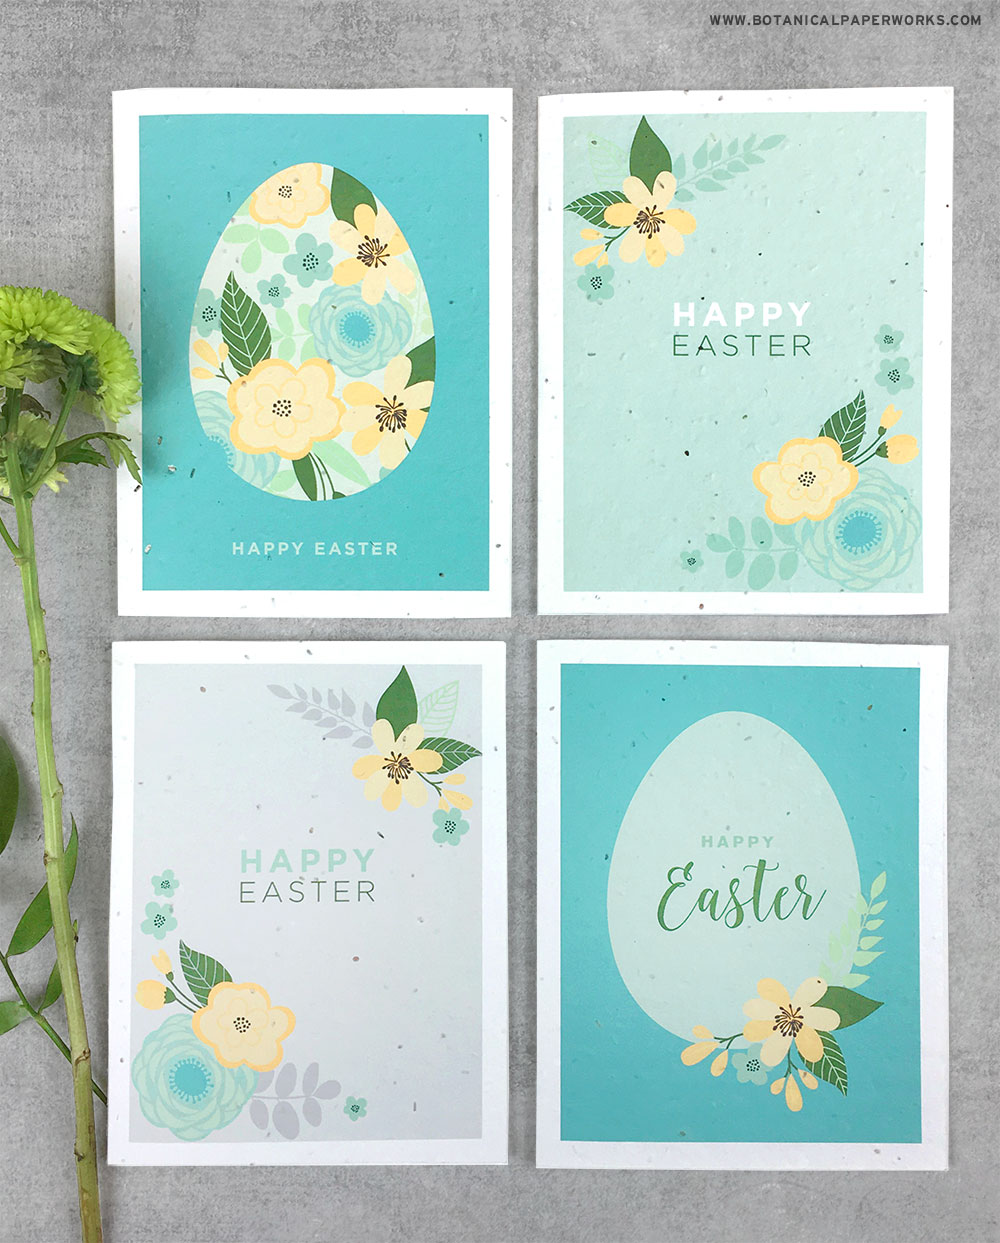 Download and print these stylish Easter Cards at home to share greetings with all your friends and family for free.